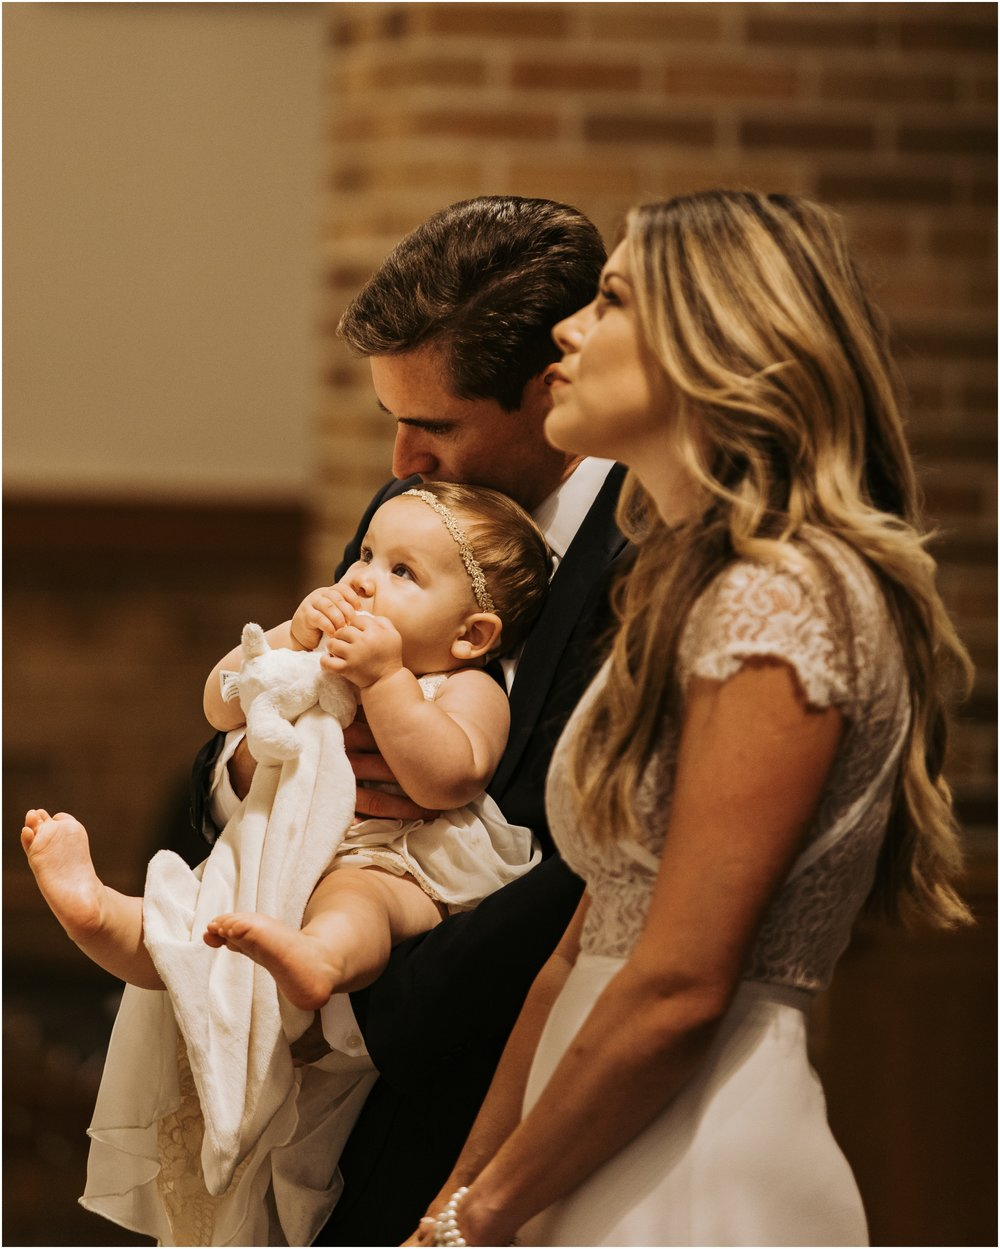 Mire-Blessing-Baptism-Family-2018-June-8524_quaint-and-whim-lifestyle-photographer-louisiana-.jpg